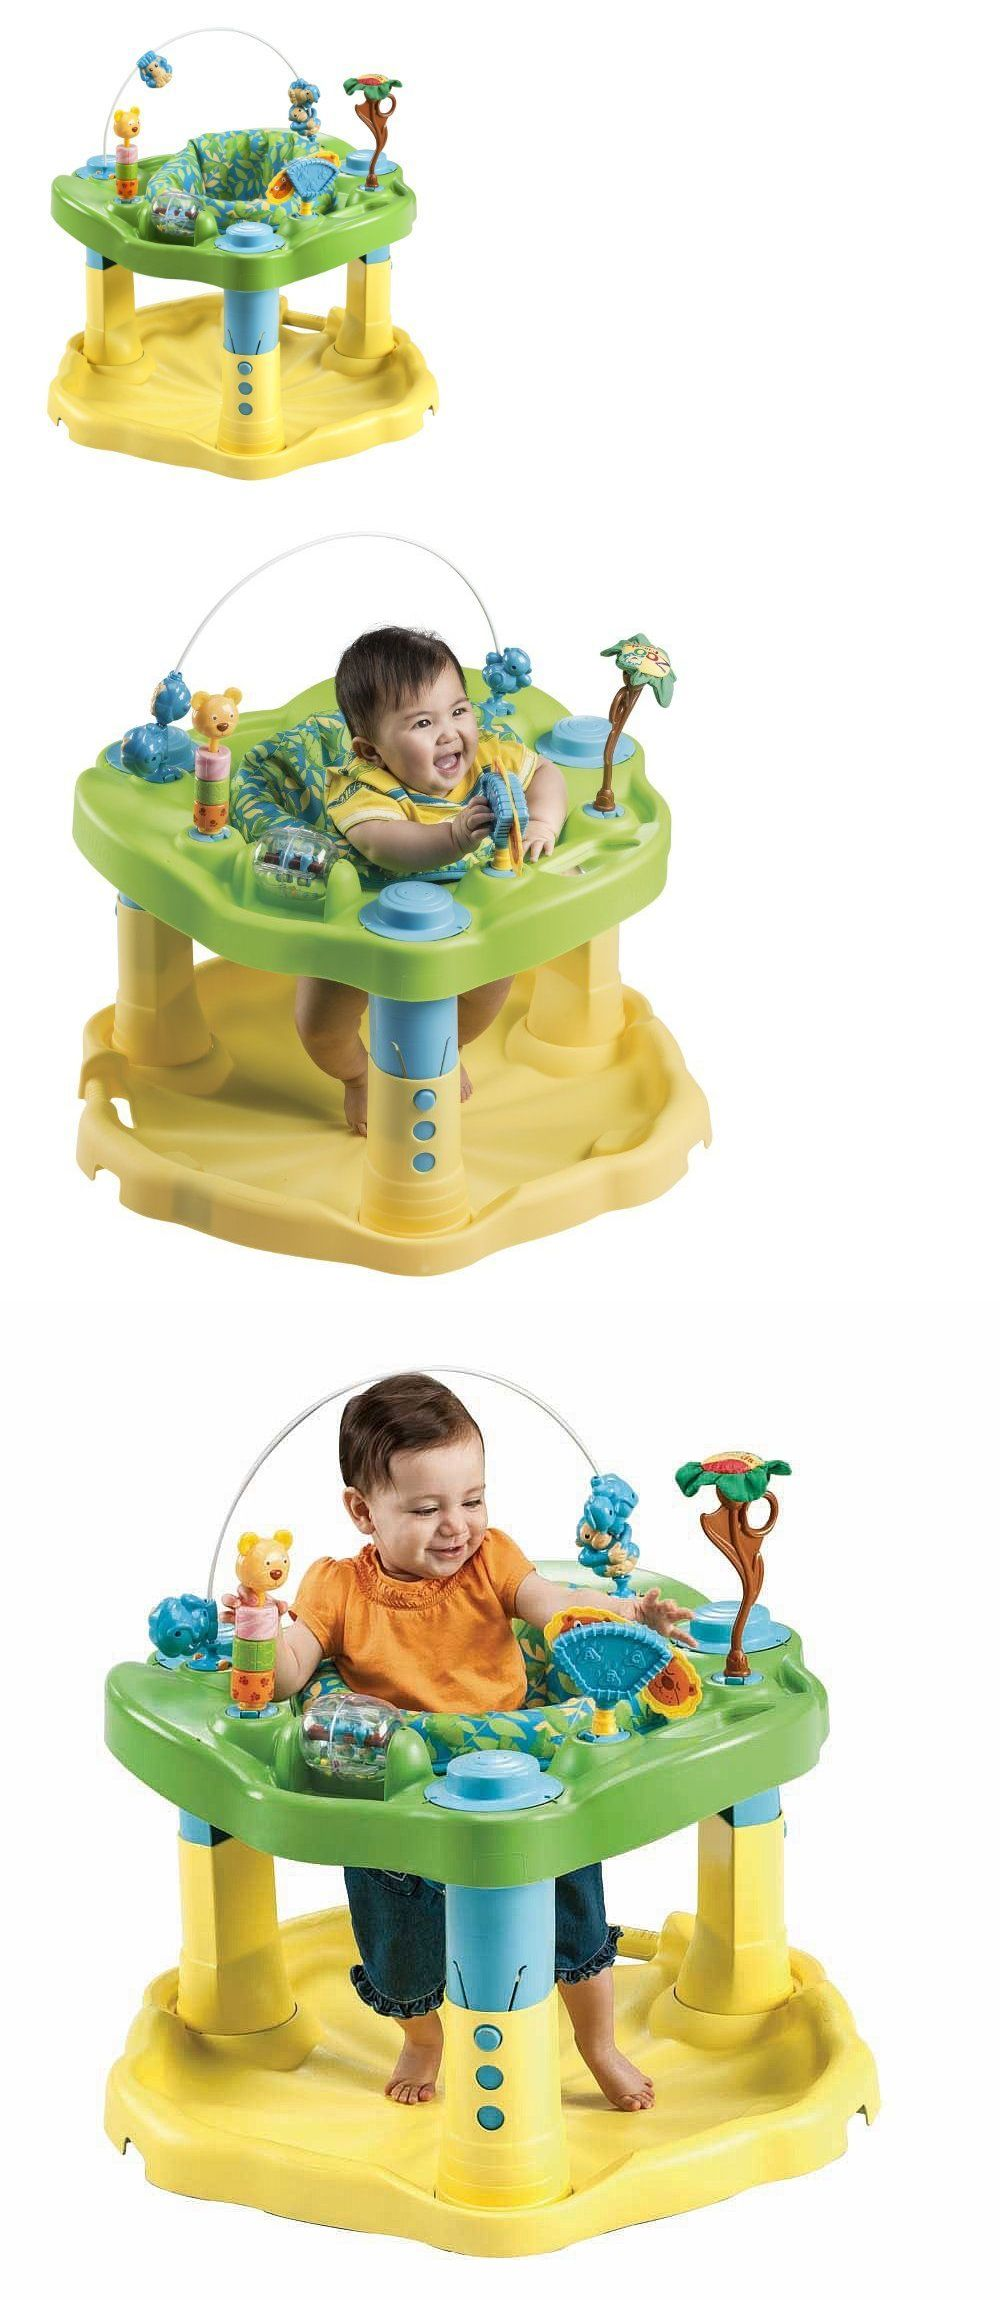 88853c70ee54 Evenflo ExerSaucer Delux Active Learning Center Toddler Baby Play ...